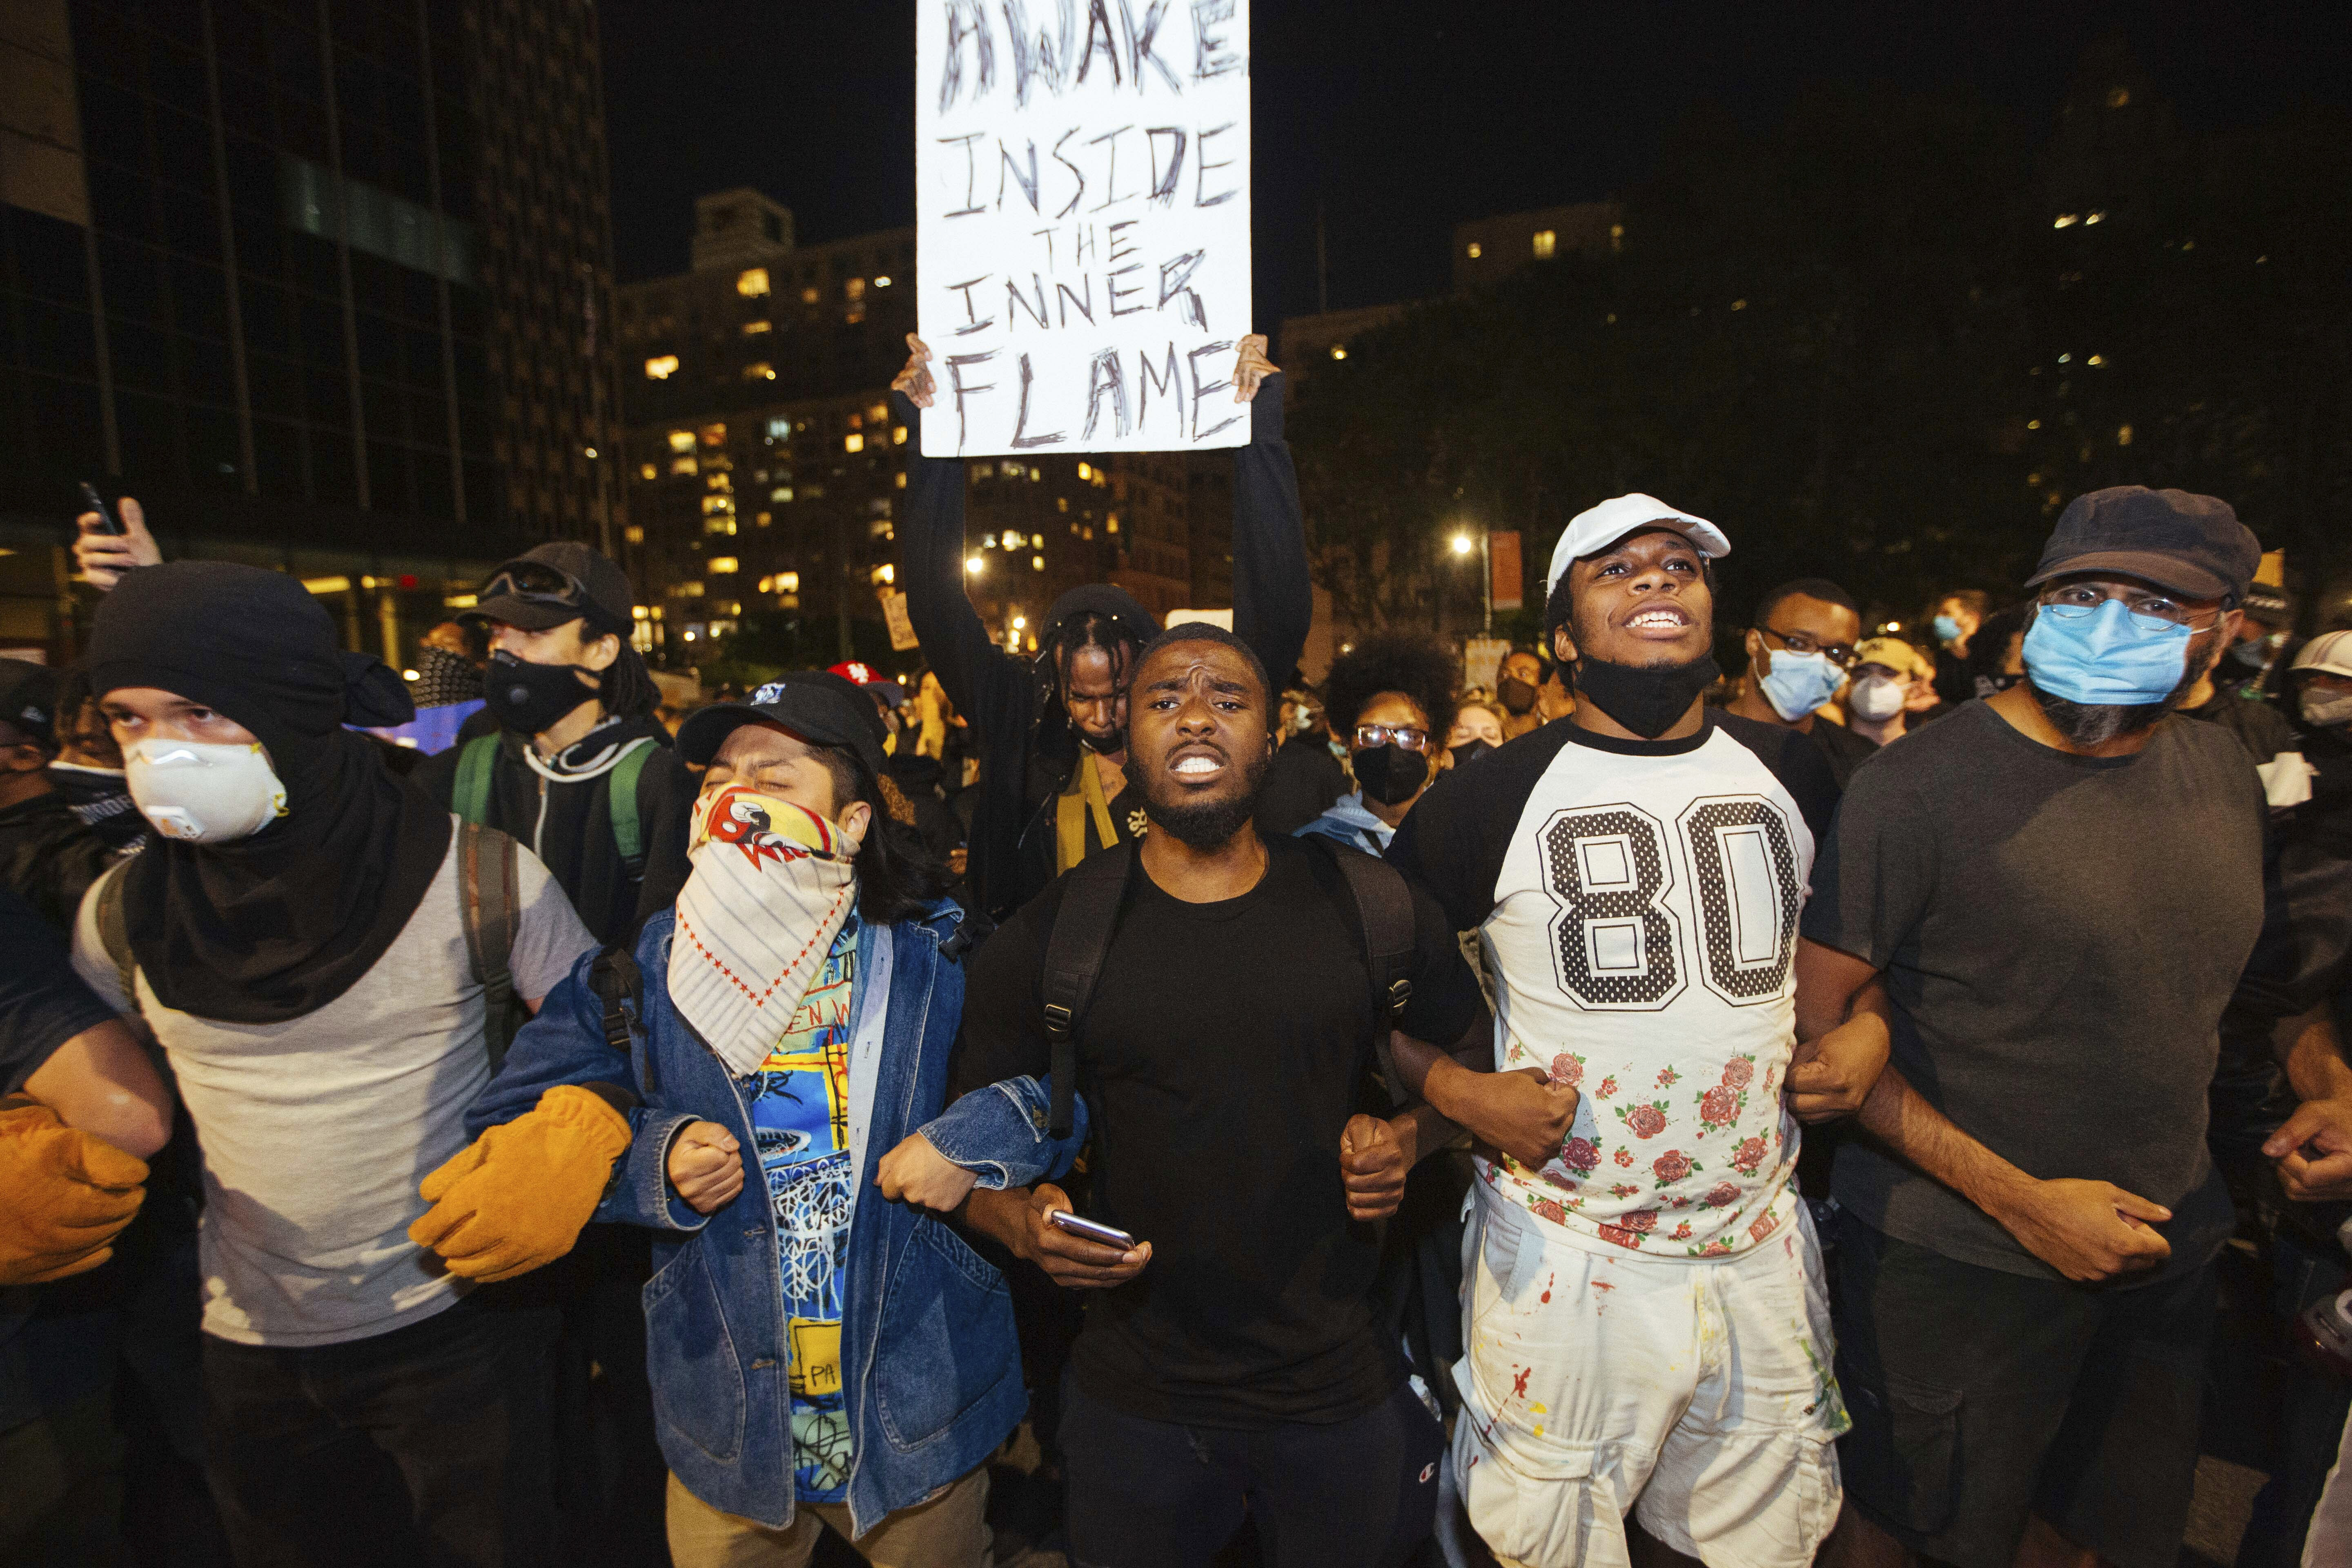 Activists march to the Brooklyn Bridge on Sunday, May 31, 2020, in New York. Demonstrators took to the streets of New York City to protest the death of George Floyd, who died May 25 after he was pinned at the neck by a Minneapolis police officer. (AP Photo/Kevin Hagen).